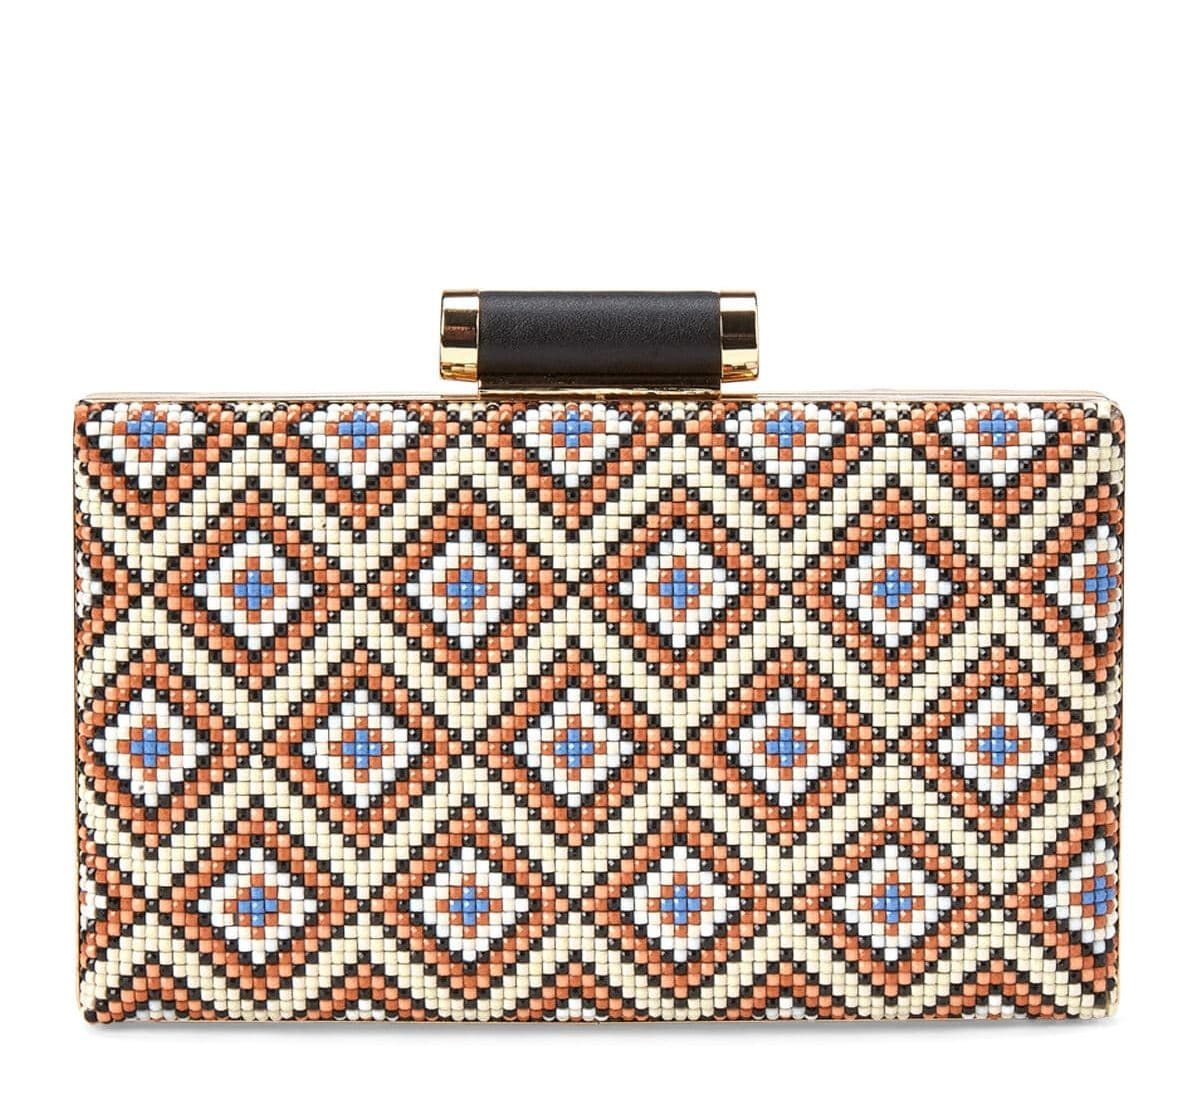 Tory beaded Convertible Clutch For Fall Winter Spring Summer